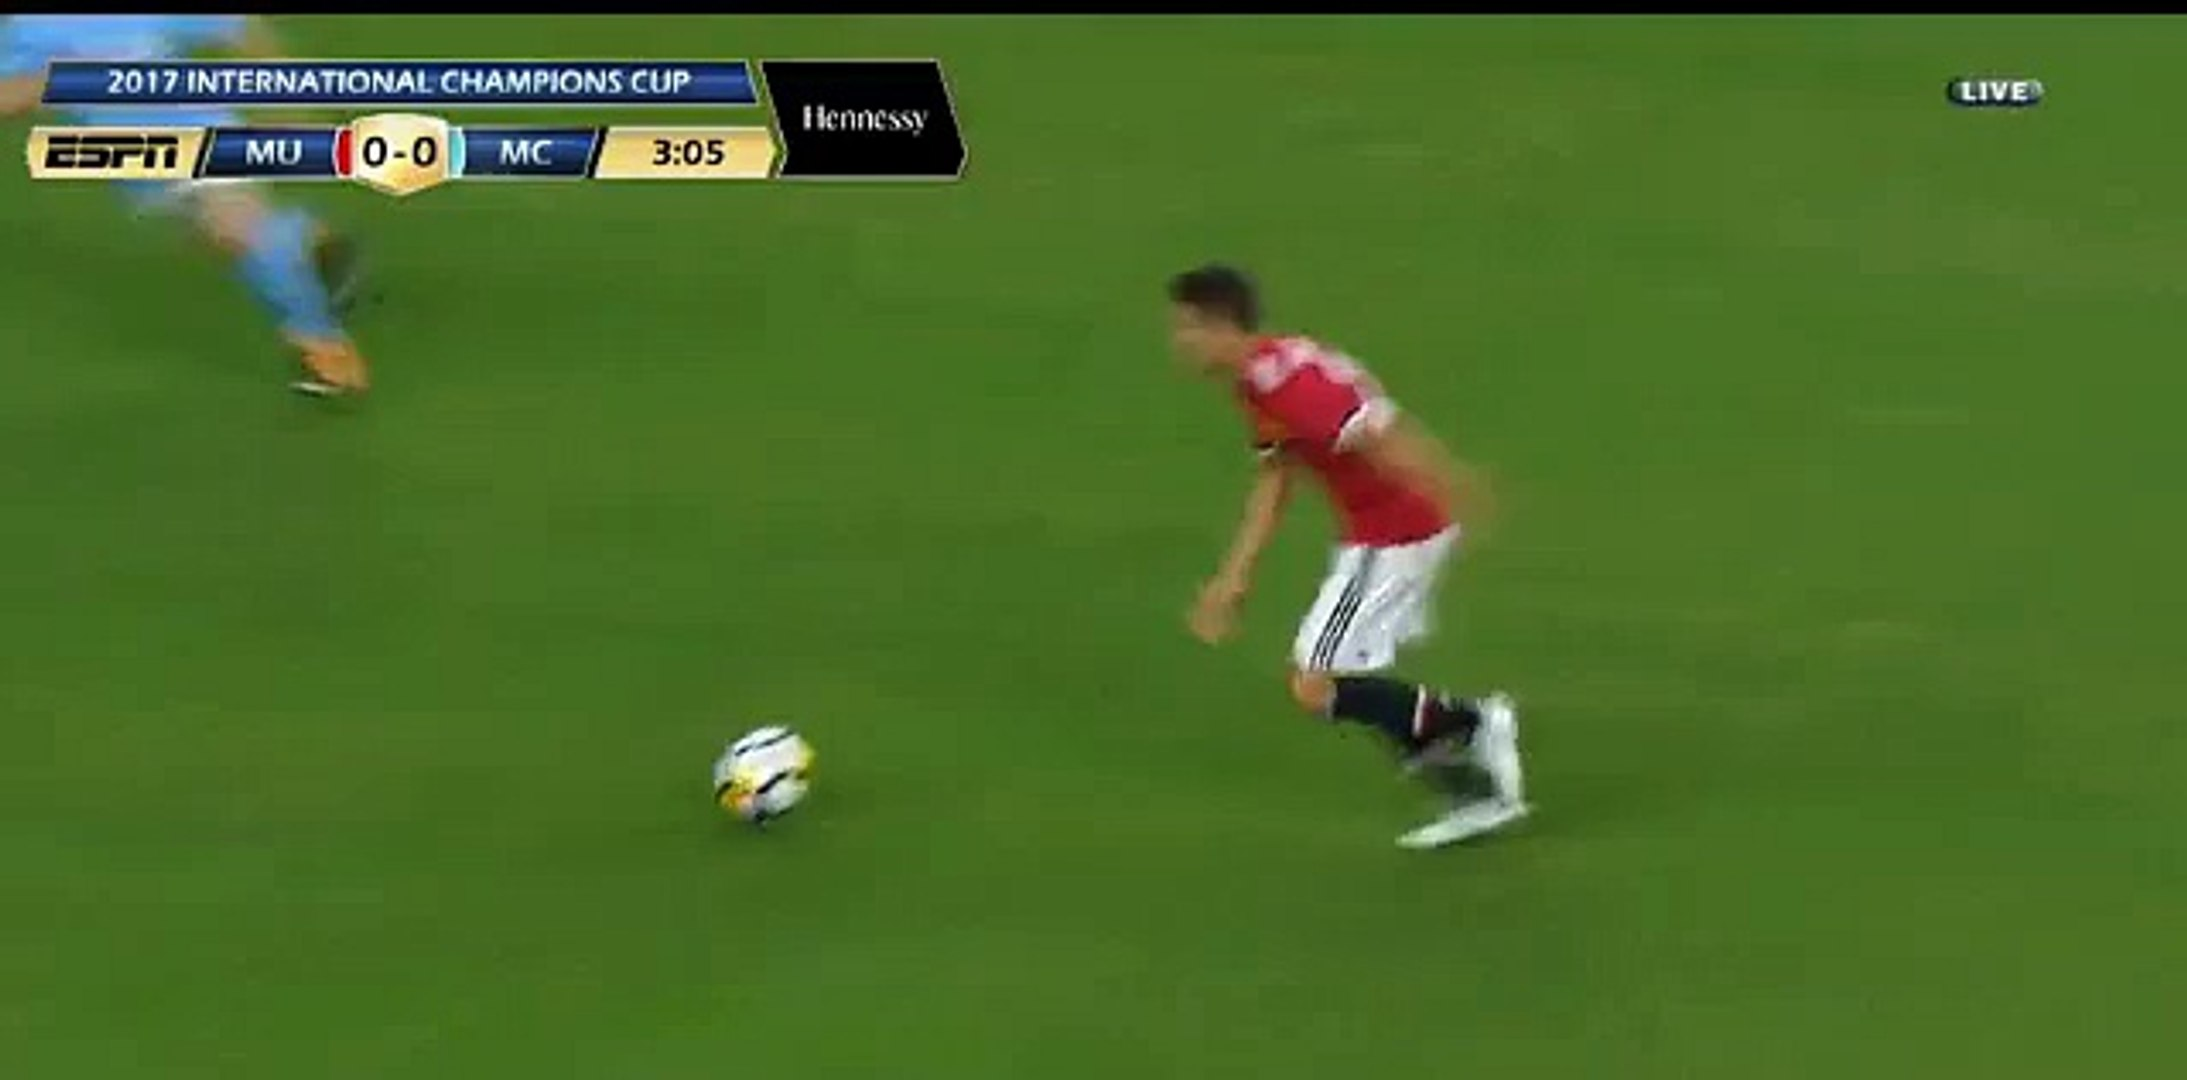 Ander Herrera Amazing shot - Manchester City 0-0 Manchester United - 20.07.2017 International Champi